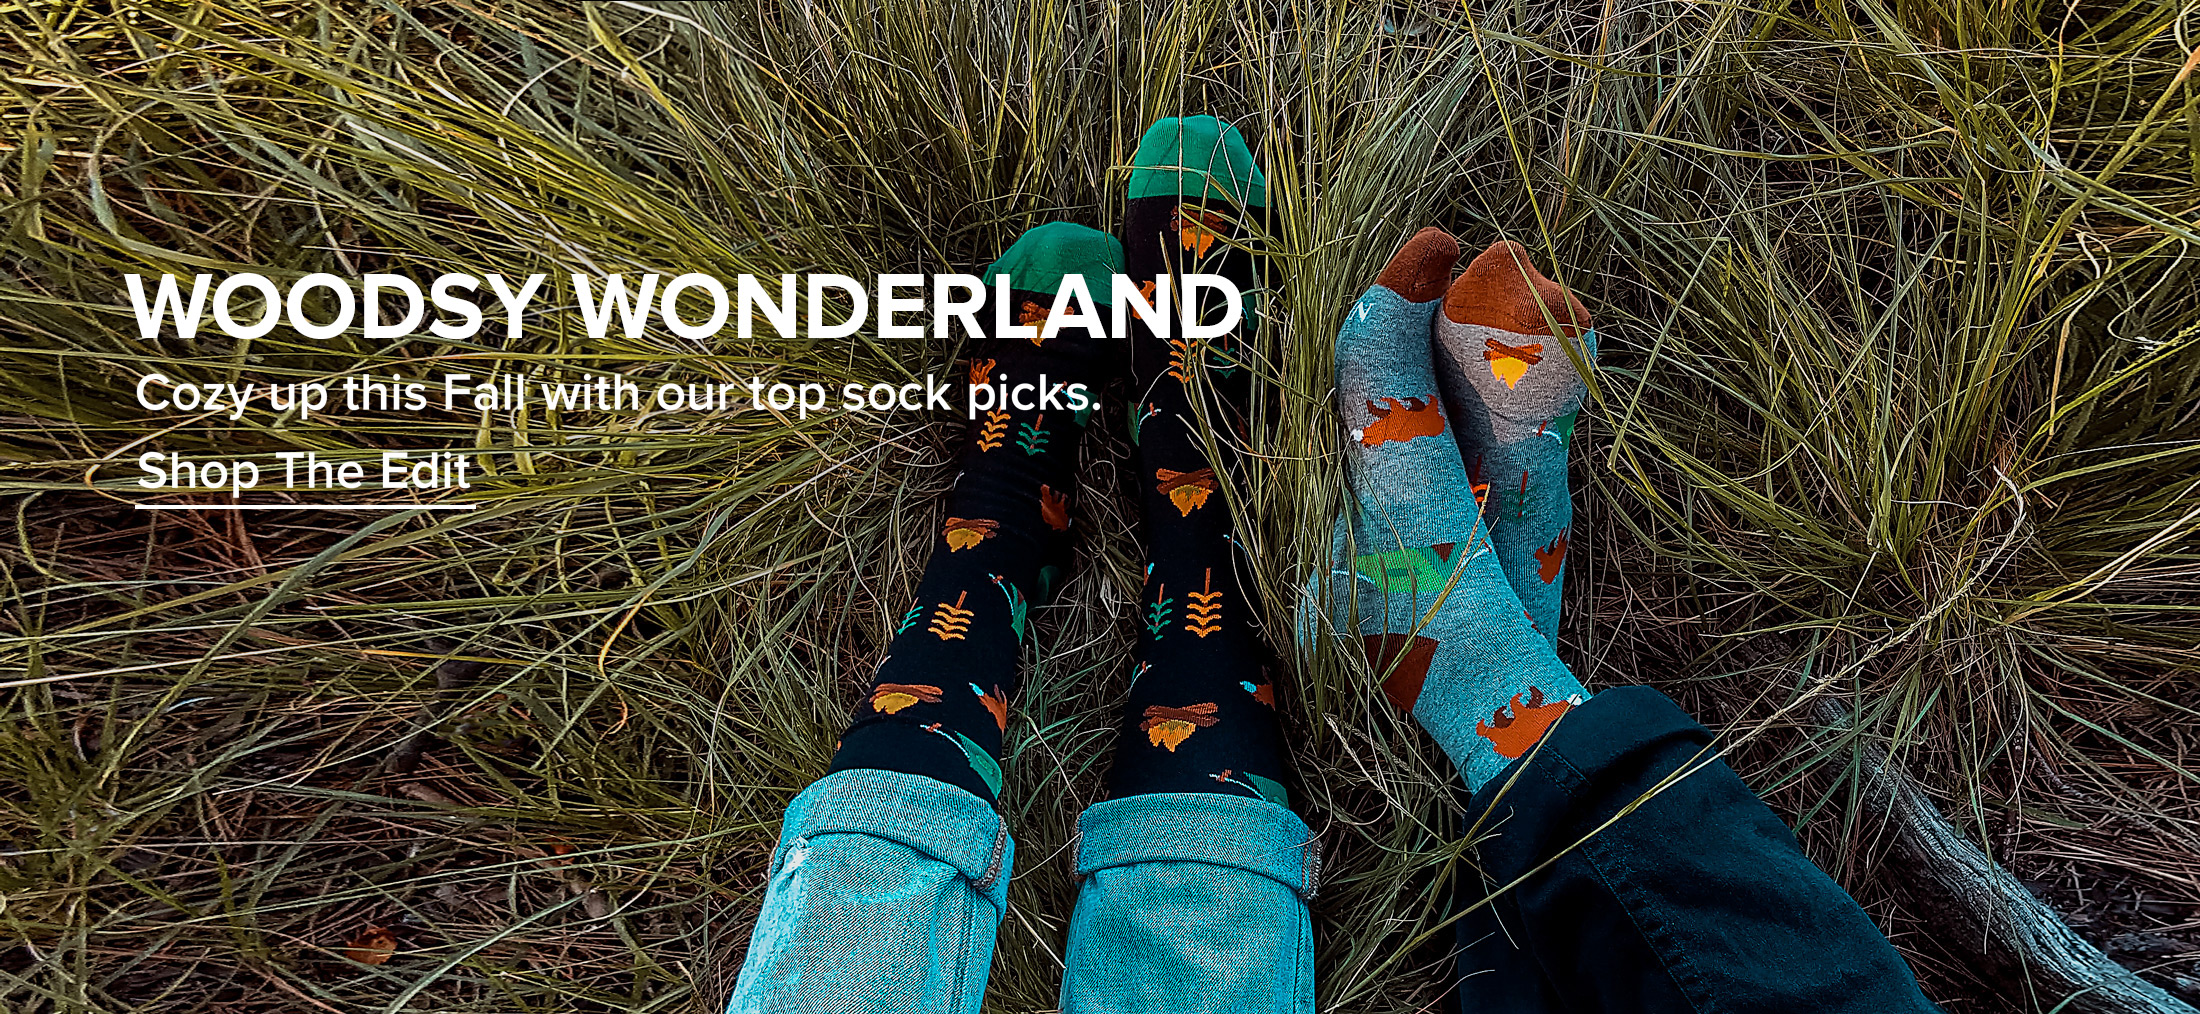 Cozy up this Fall with out top sock picks. Click to shop socks.